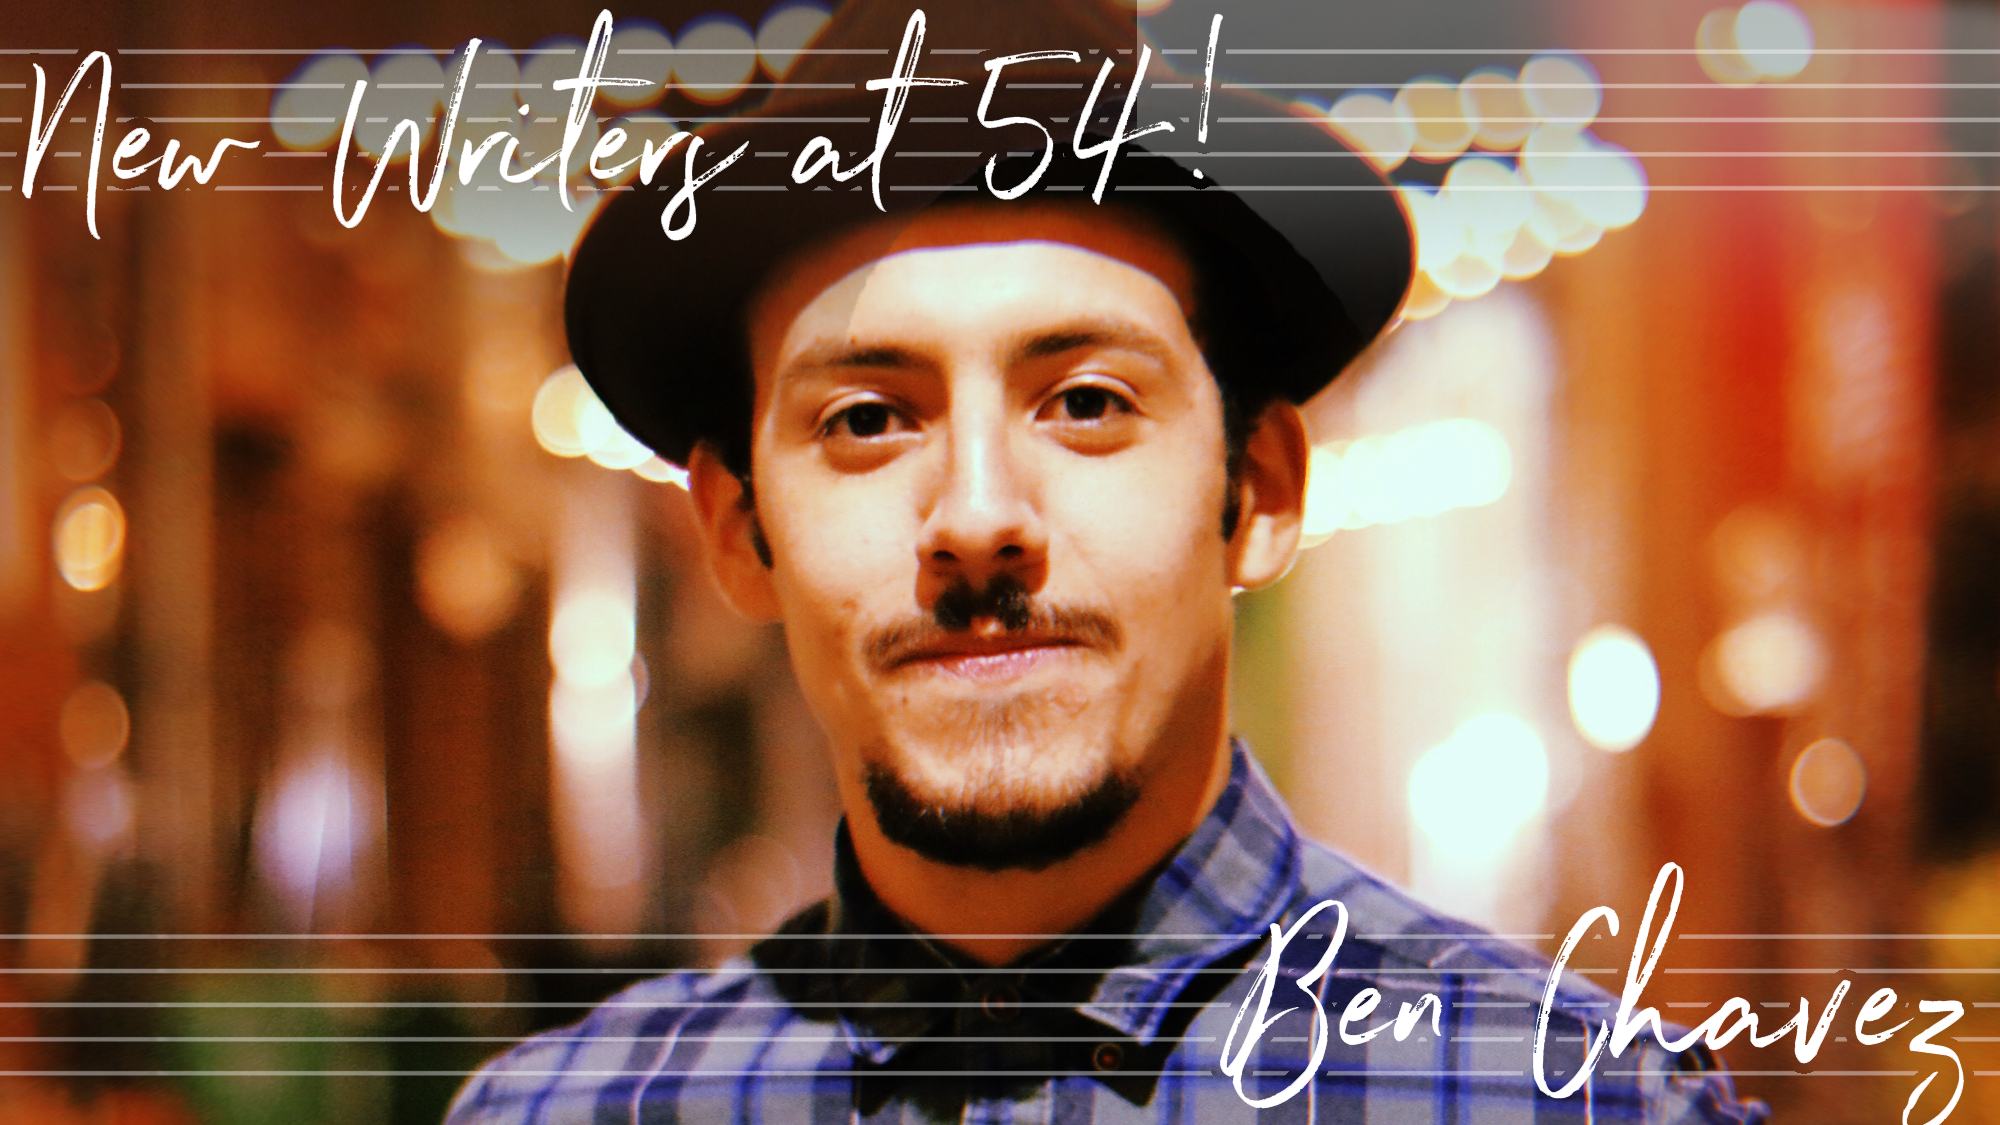 New Writers at 54! Ben Chavez